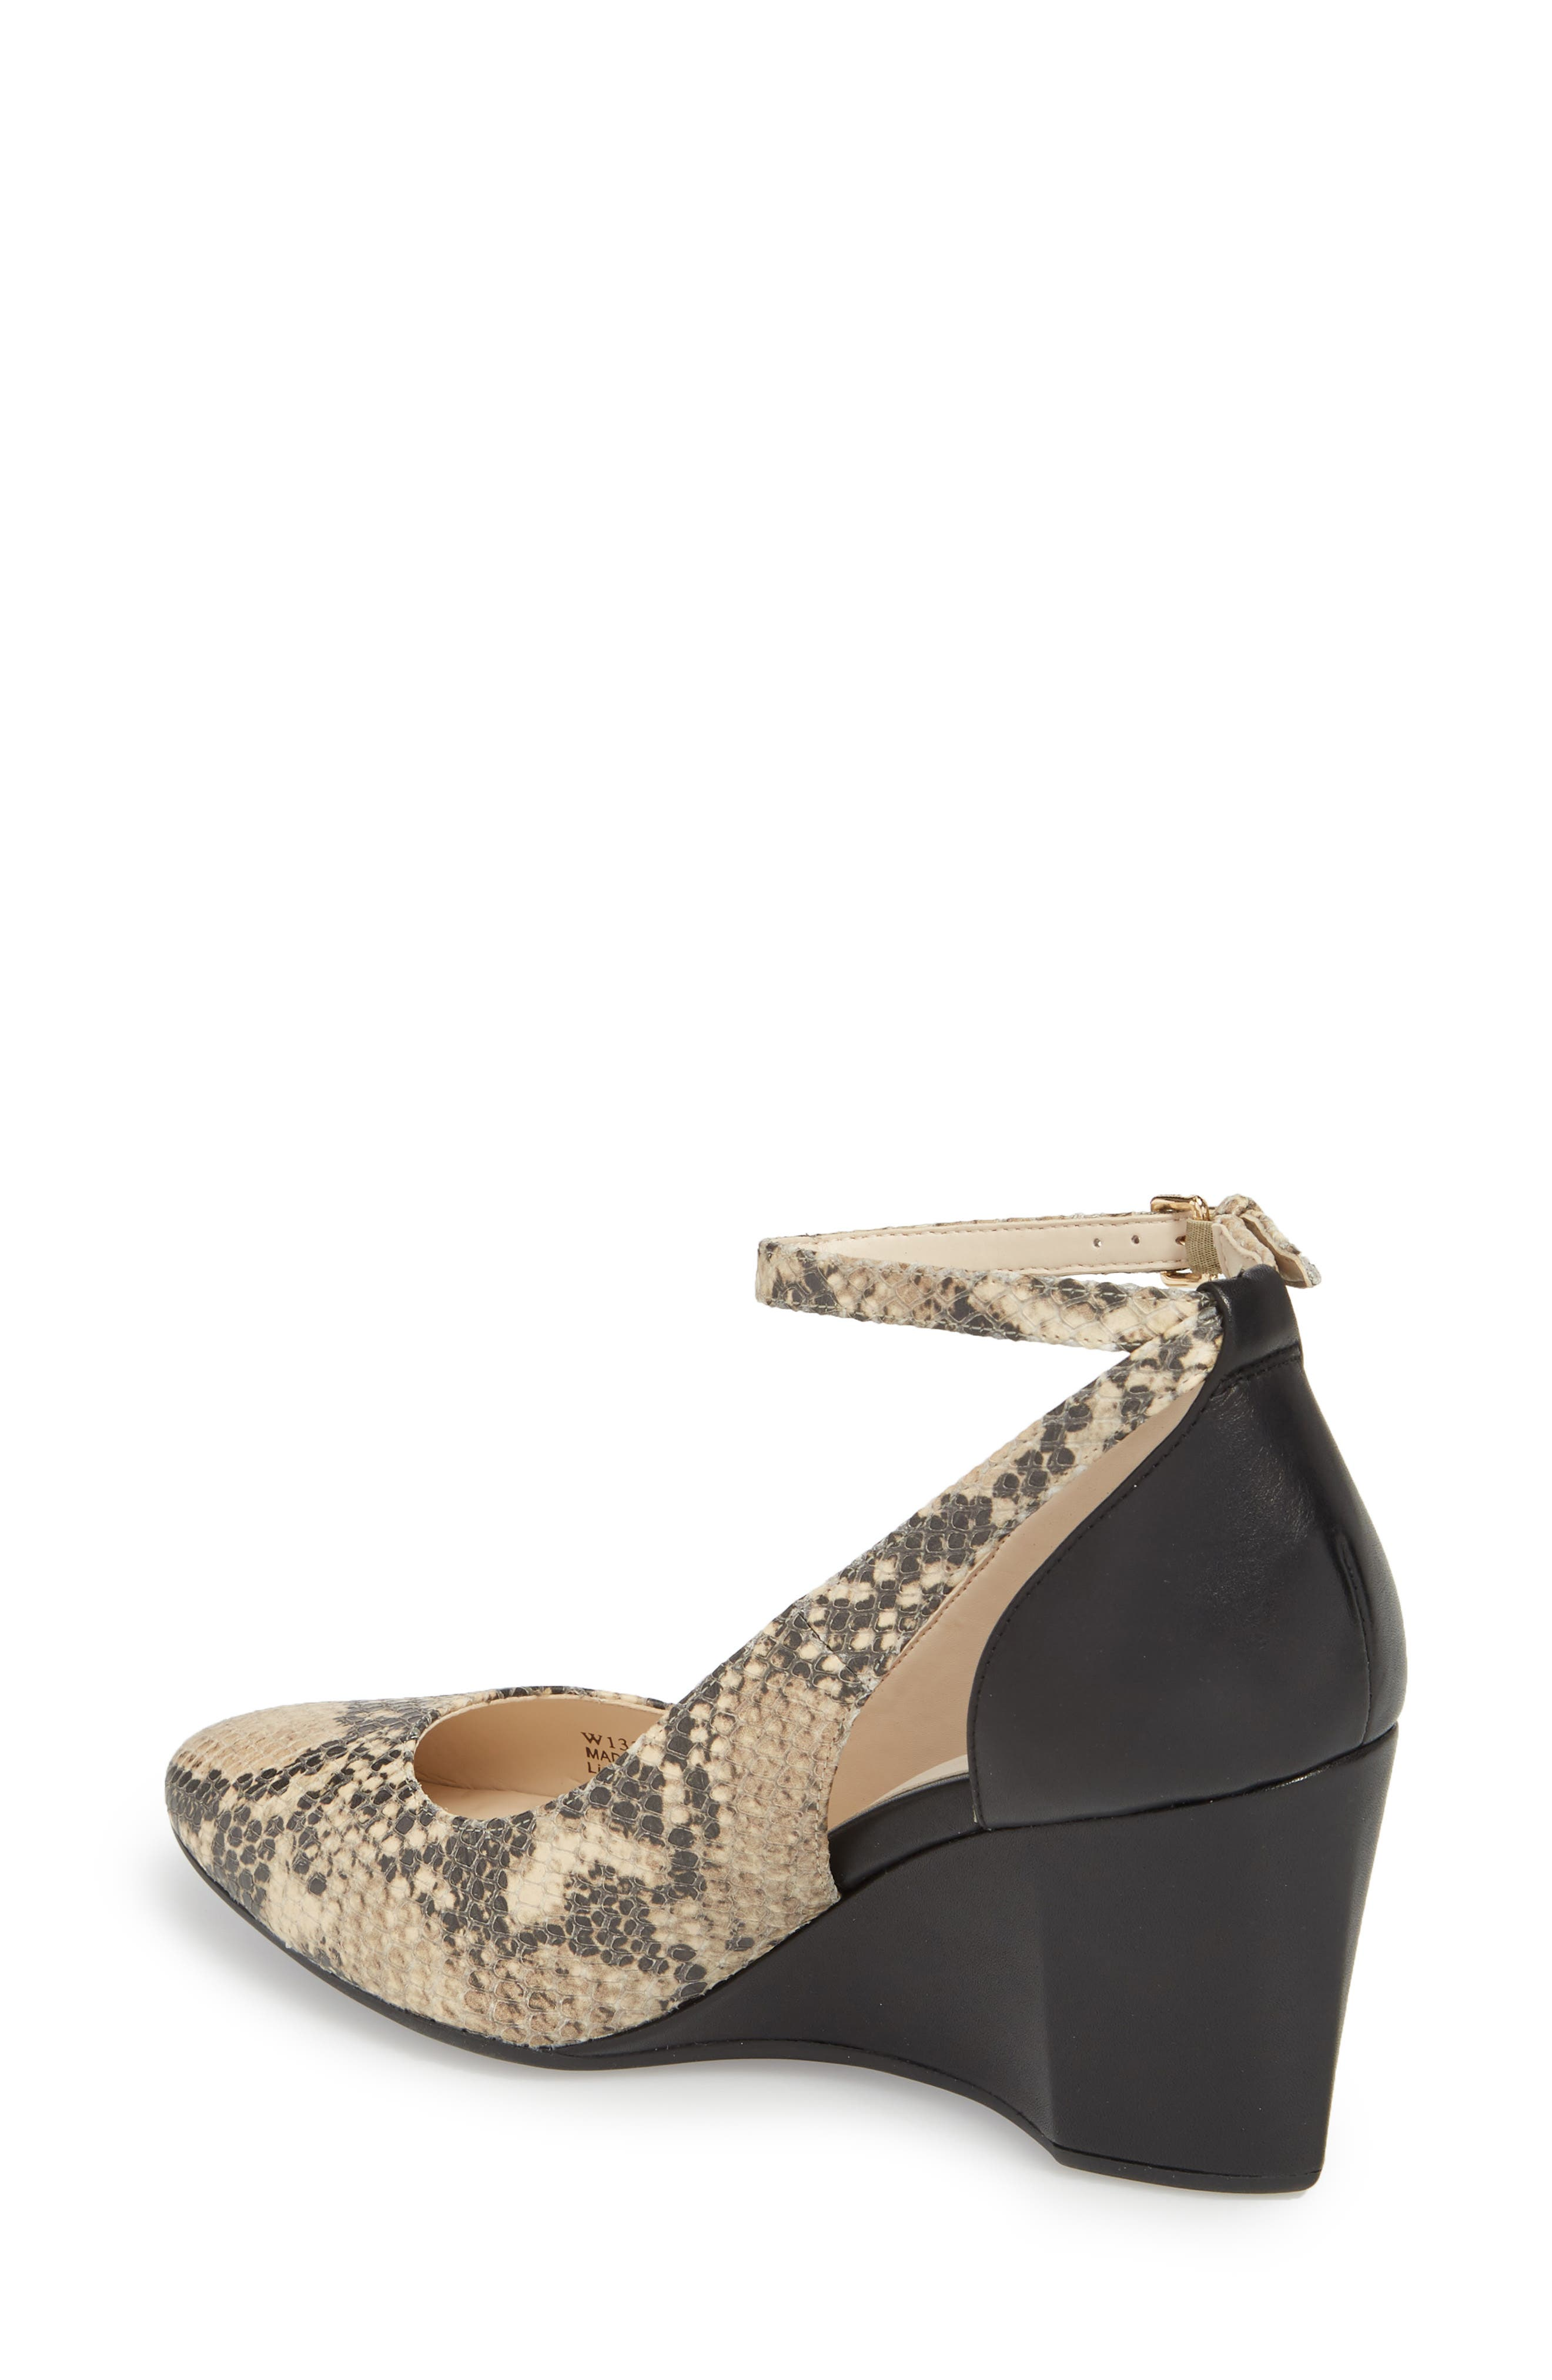 Lacey Cutout Wedge Pump,                             Alternate thumbnail 2, color,                             SNAKE PRINT LEATHER